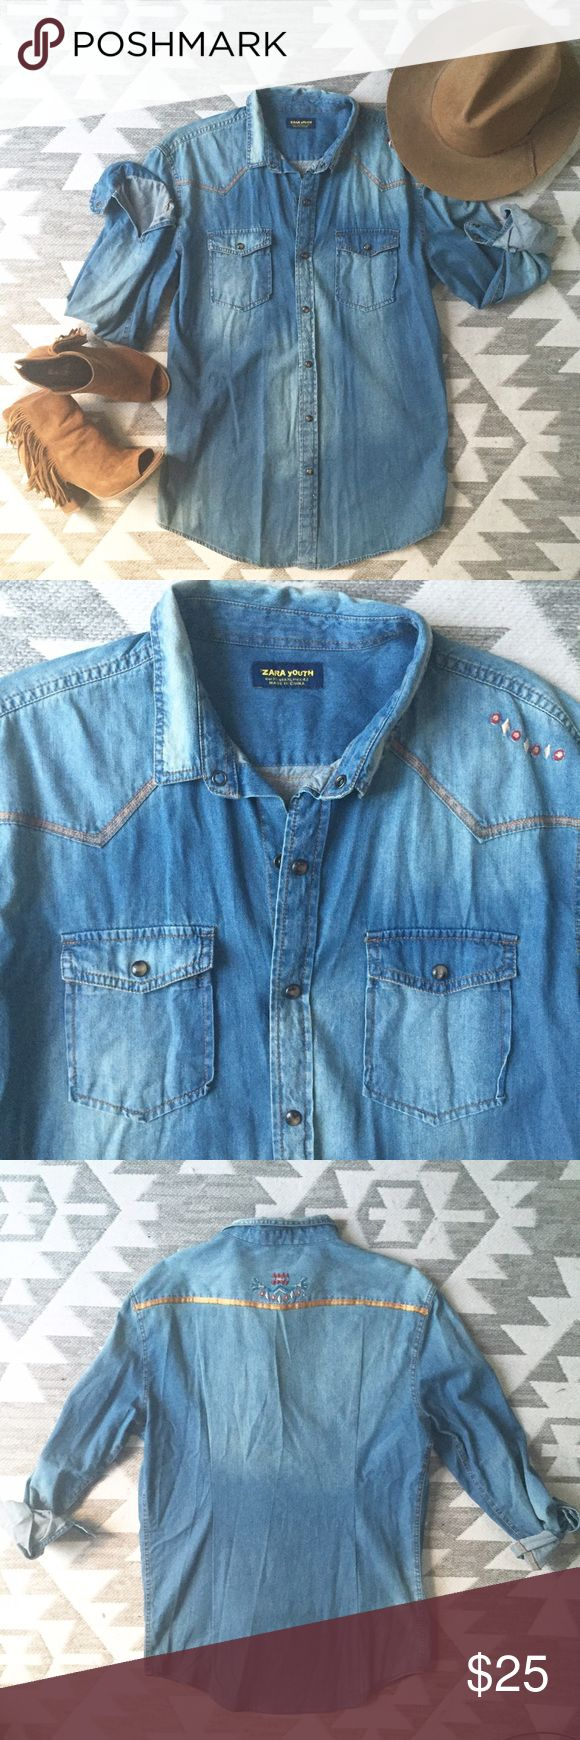 ✨NEW LISTING✨ Zara Youth denim long sleeve shirt❤️ A MUST HAVE in your wardrobe! Everyone NEEDS a denim longs sleeve in their wardrobe. This will be your new favorite staple during the Fall!!🍂Can be worn cowgirl style or more contemporary when you add an embellished necklace and a few bangle bracelets! ZARA YOUTH. Size XL. Also fits adult M/L. Extra long. Can be worn open and layered with a cute tank👍🏼Button snap closure. Zara Tops Button Down Shirts